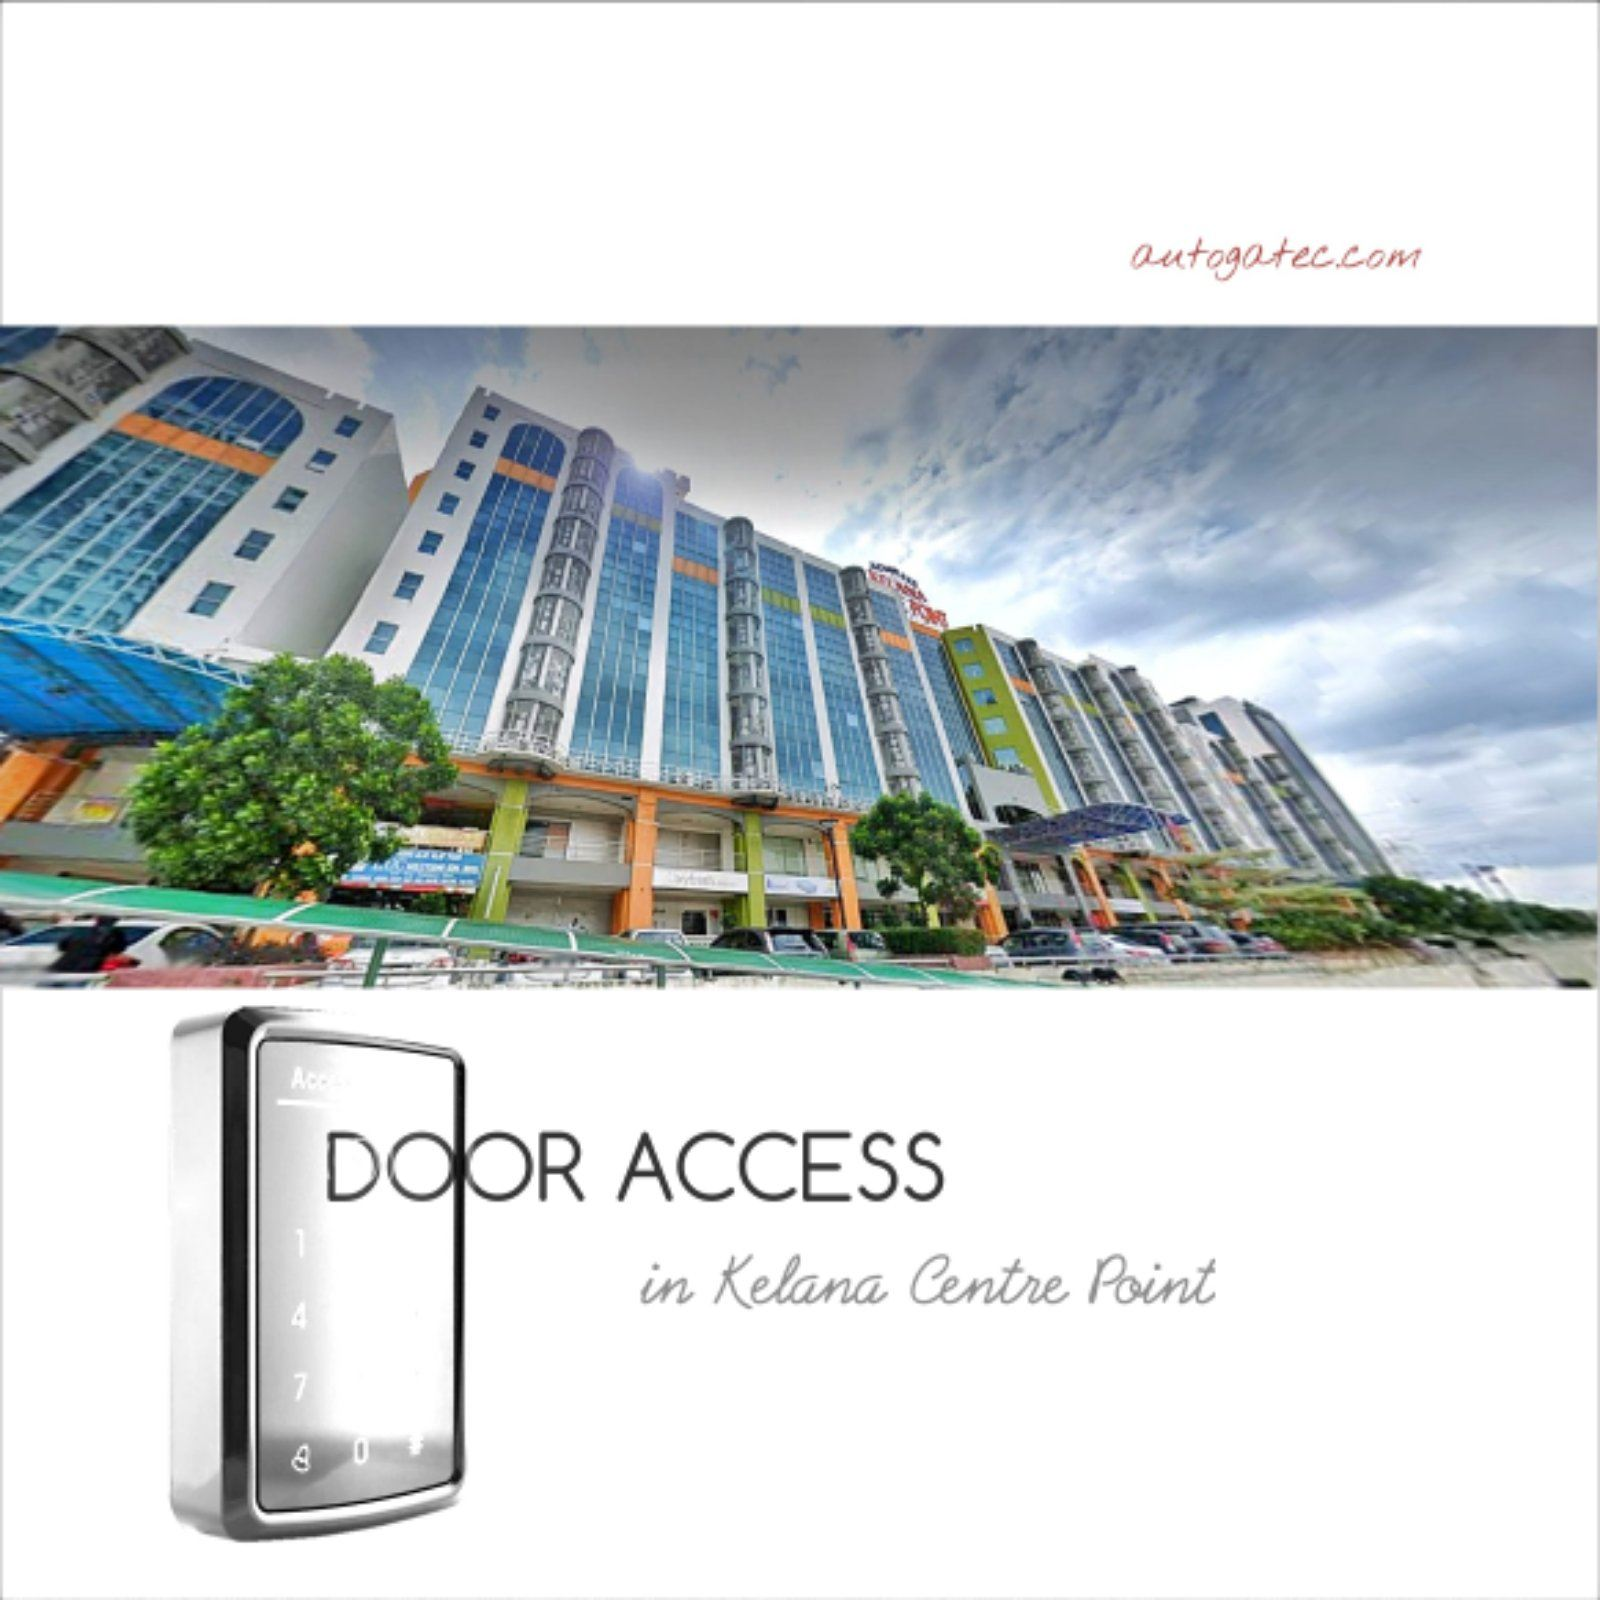 Door Access in Kelana Centre Point